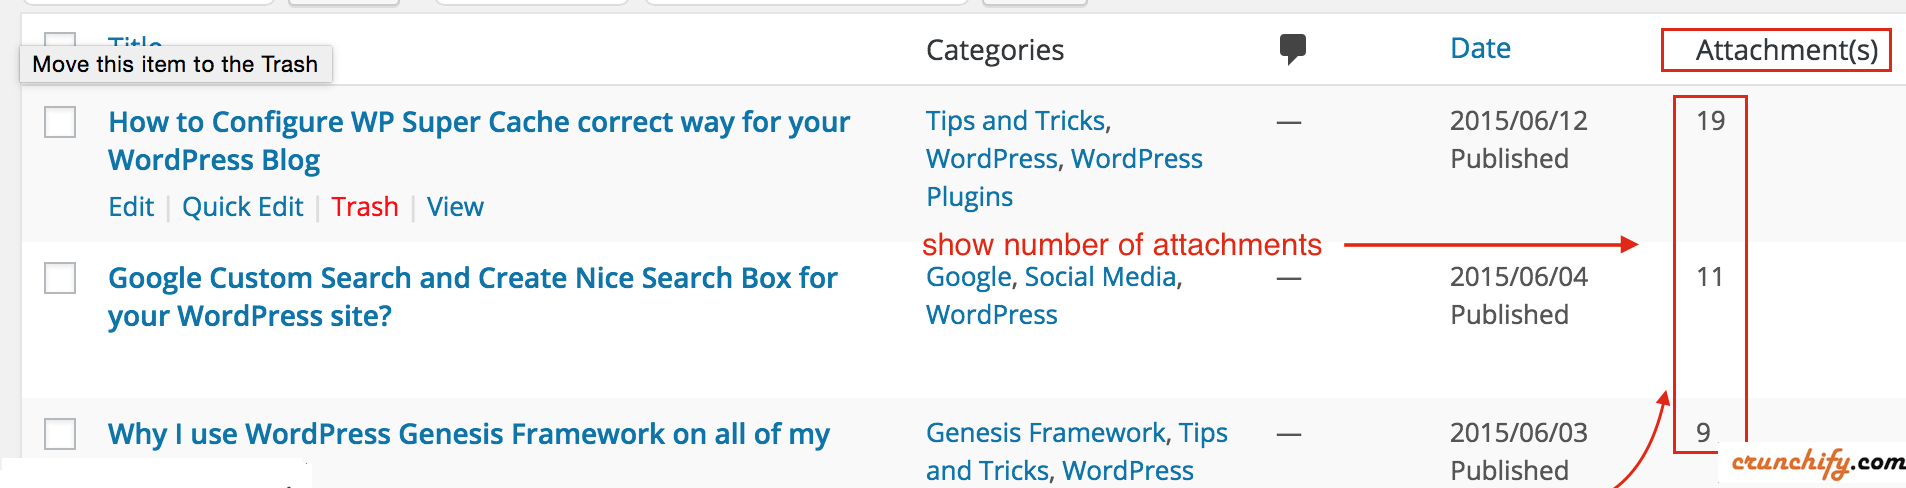 Show Number of Attachments in WordPress Admin Panel Crunchify